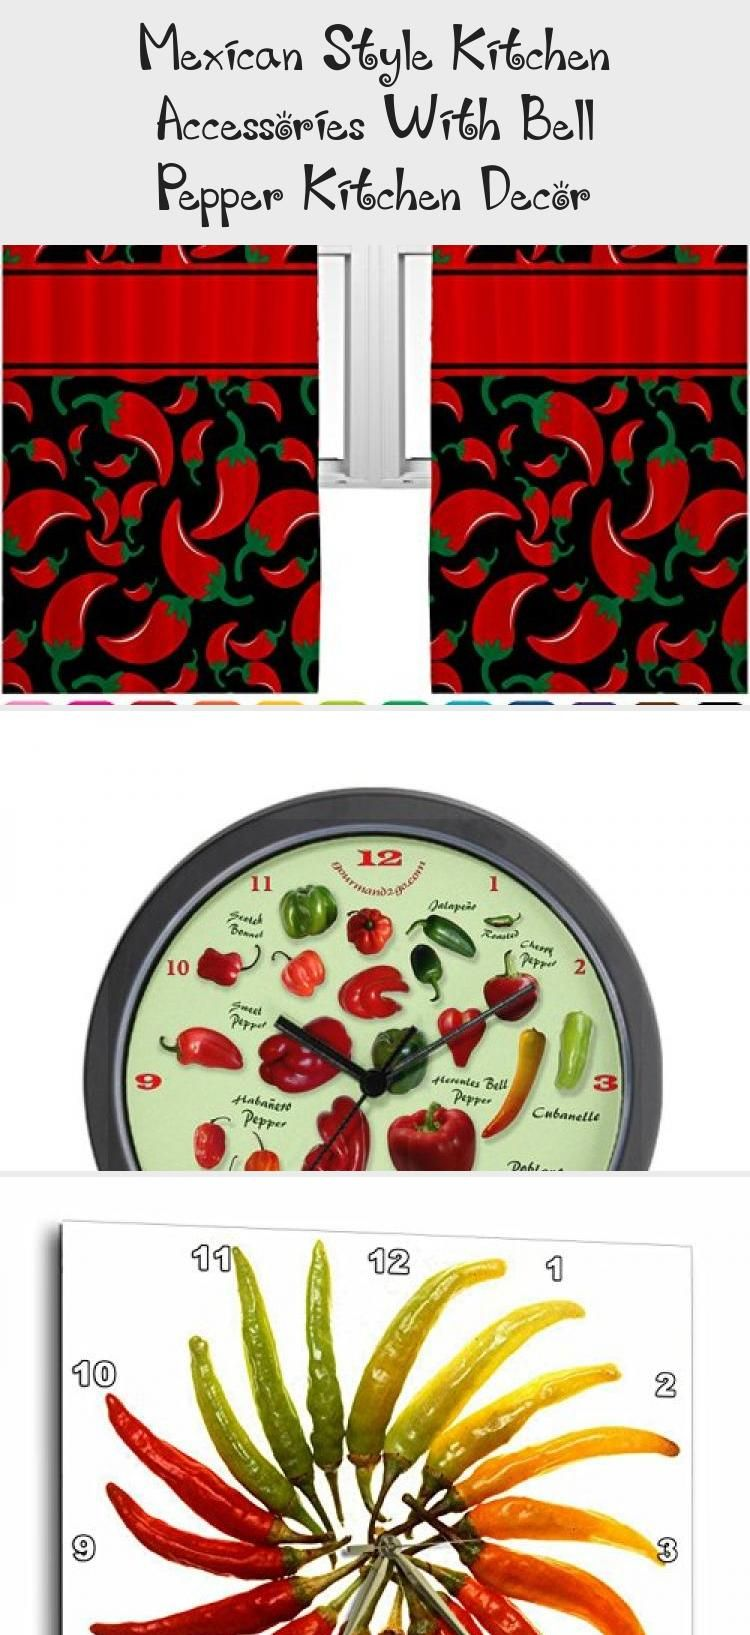 Chili Pepper Kitchen Decor Mexican Style Kitchen Accessories 2020 Kims Home Ideas Red Kitchen Accessories Kitchen Canisters Stuffed Peppers